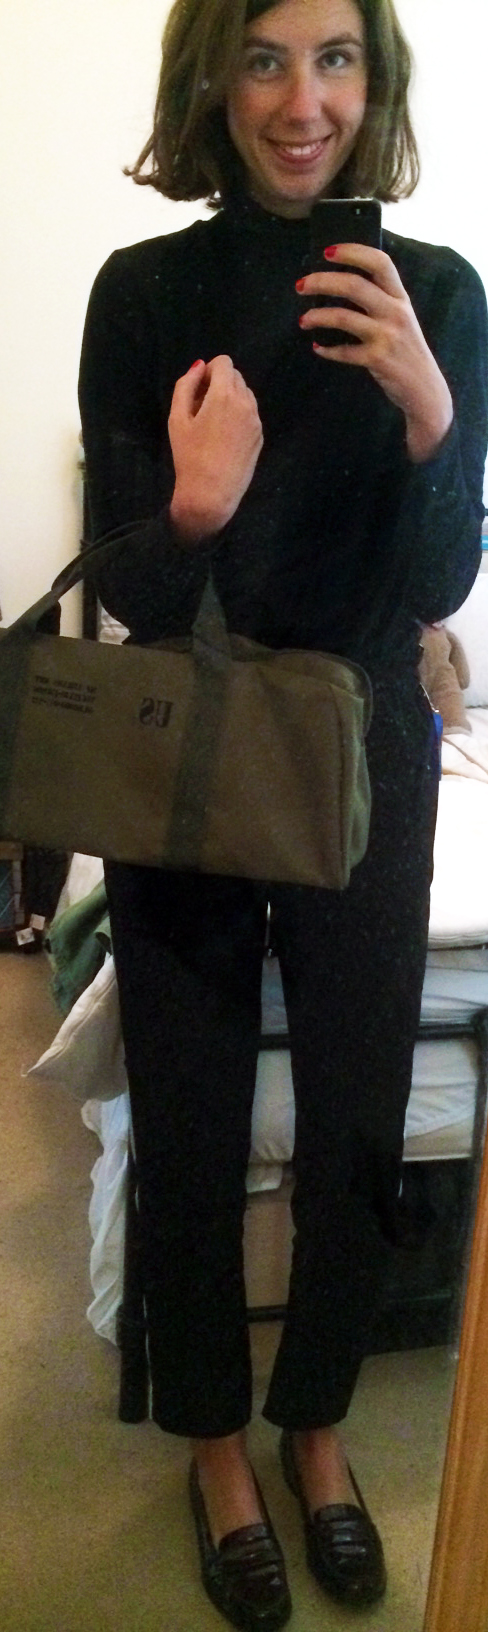 Cropped Black Pants ,  L.K.Bennett Loafers ,  Army Holdall Bag , $2 Black Turtleneck